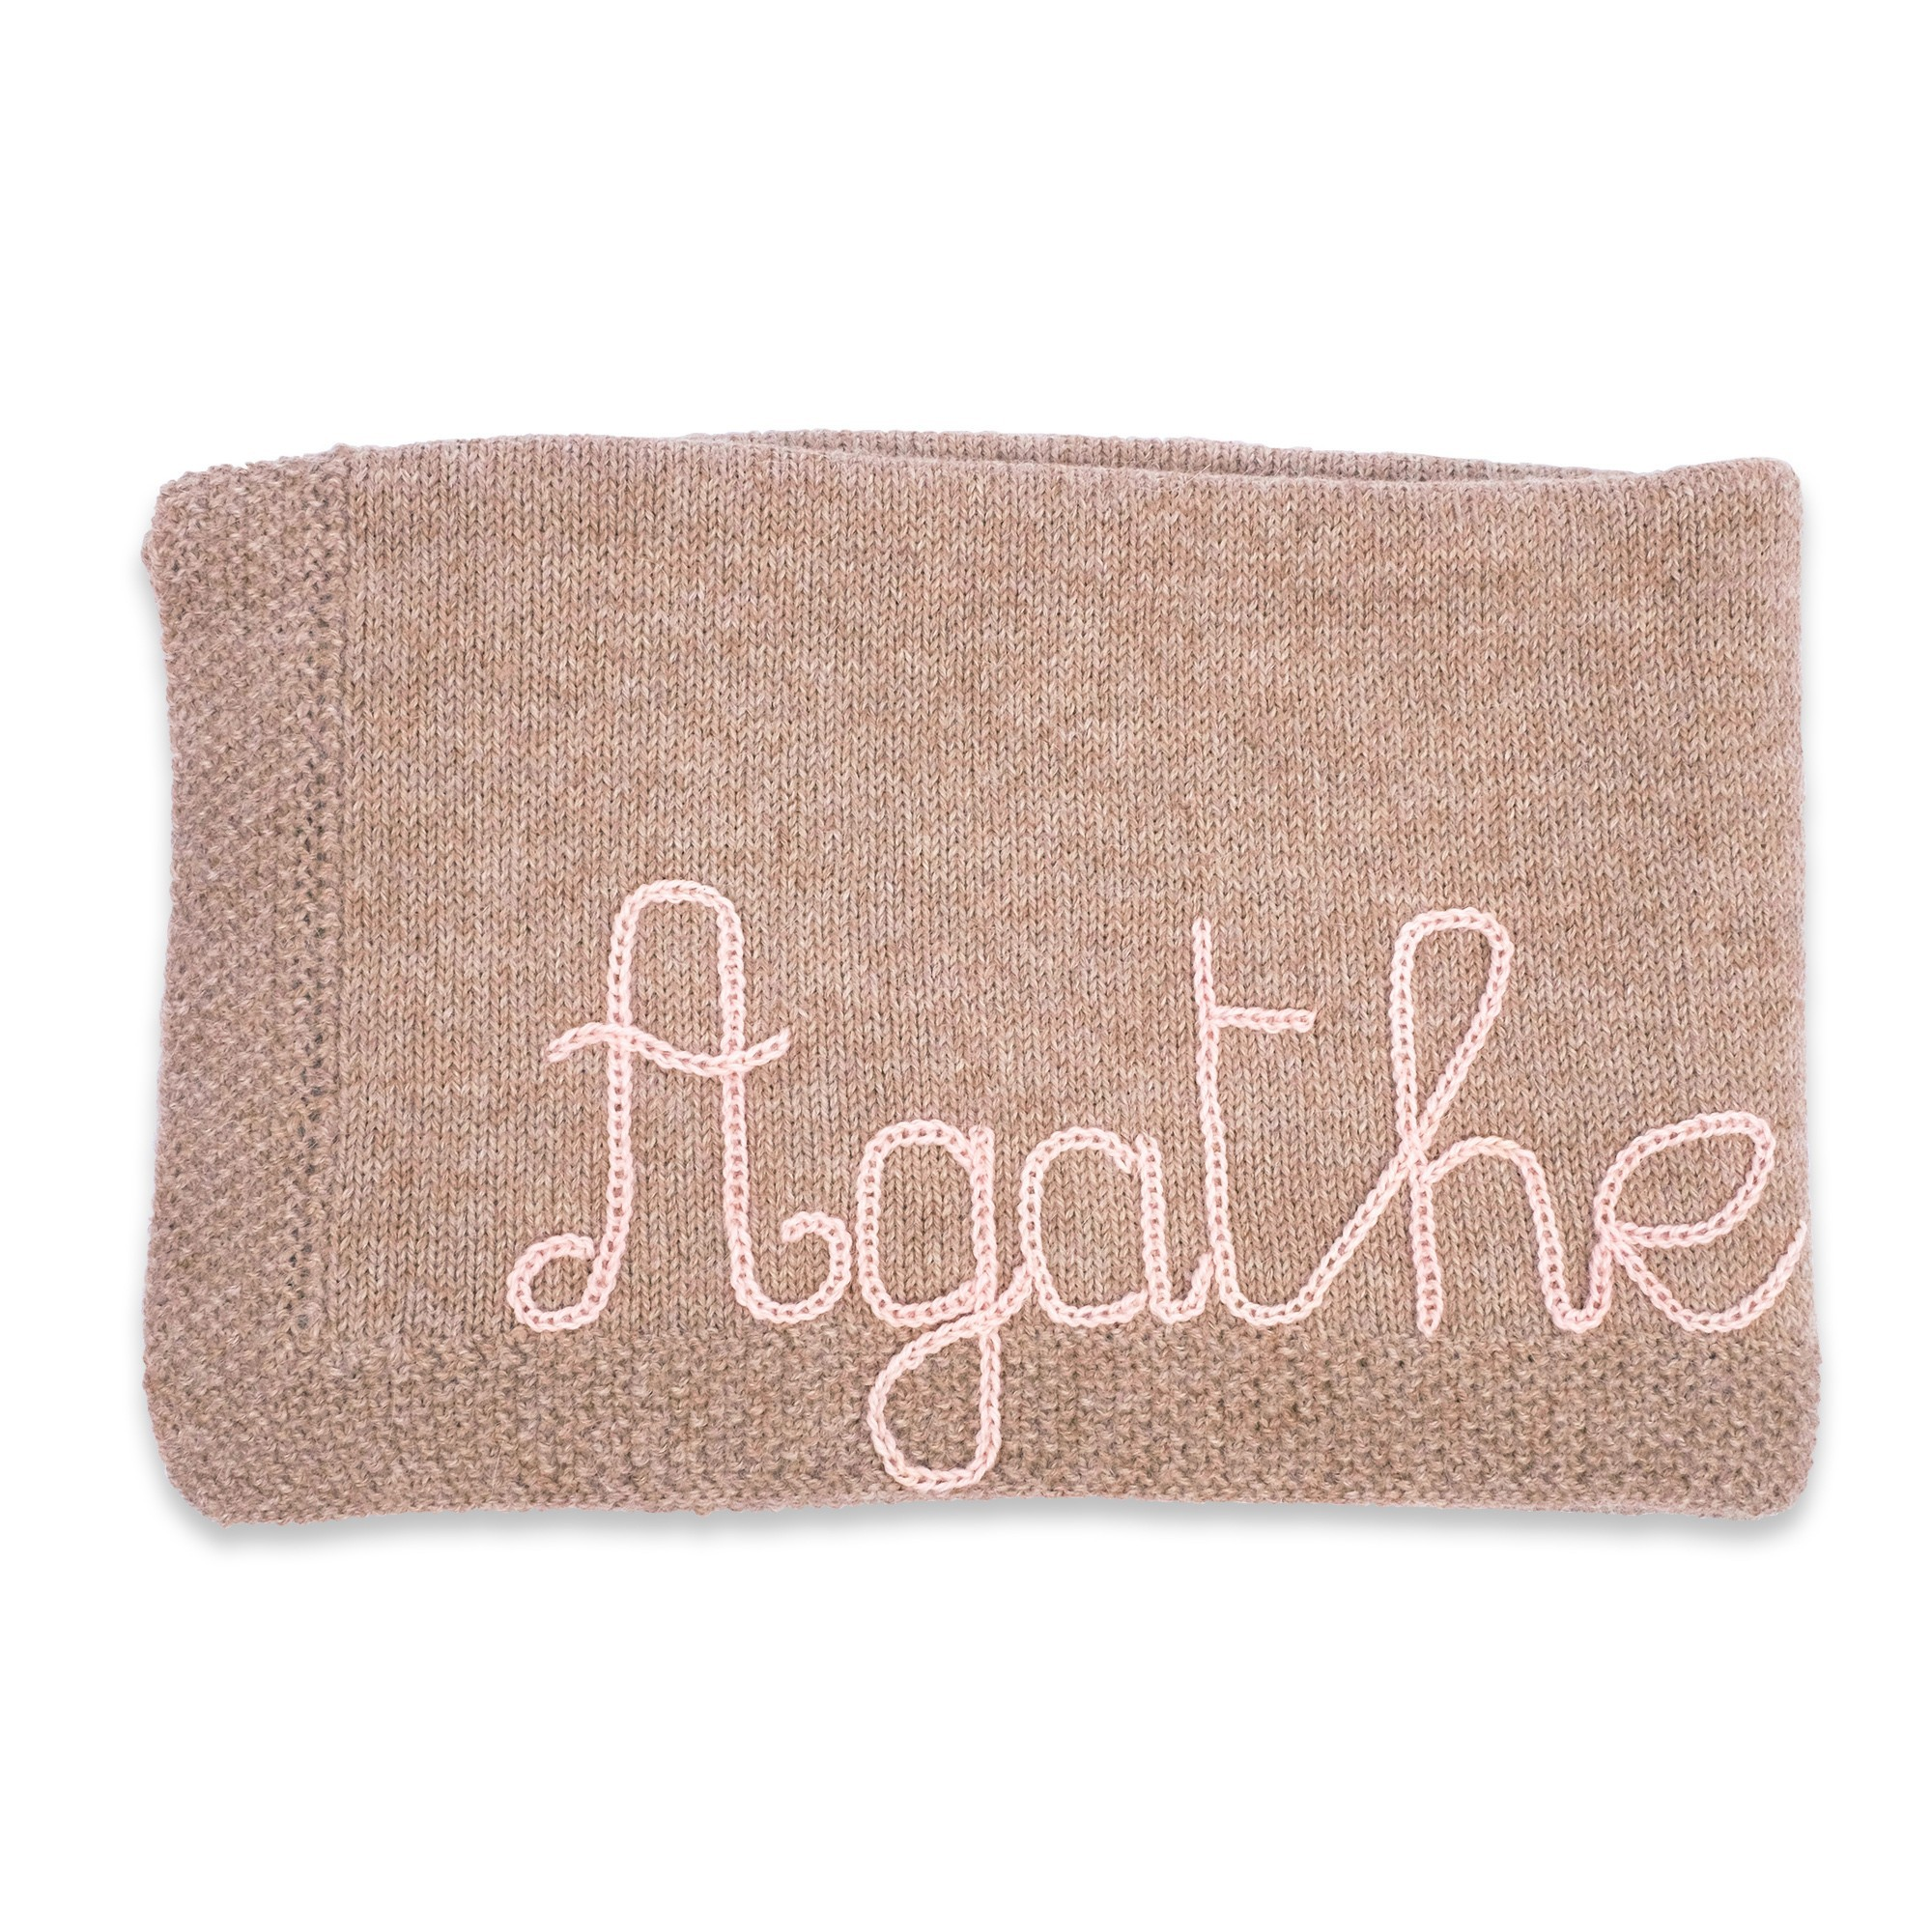 Customizable blanket  with light pink embroidery